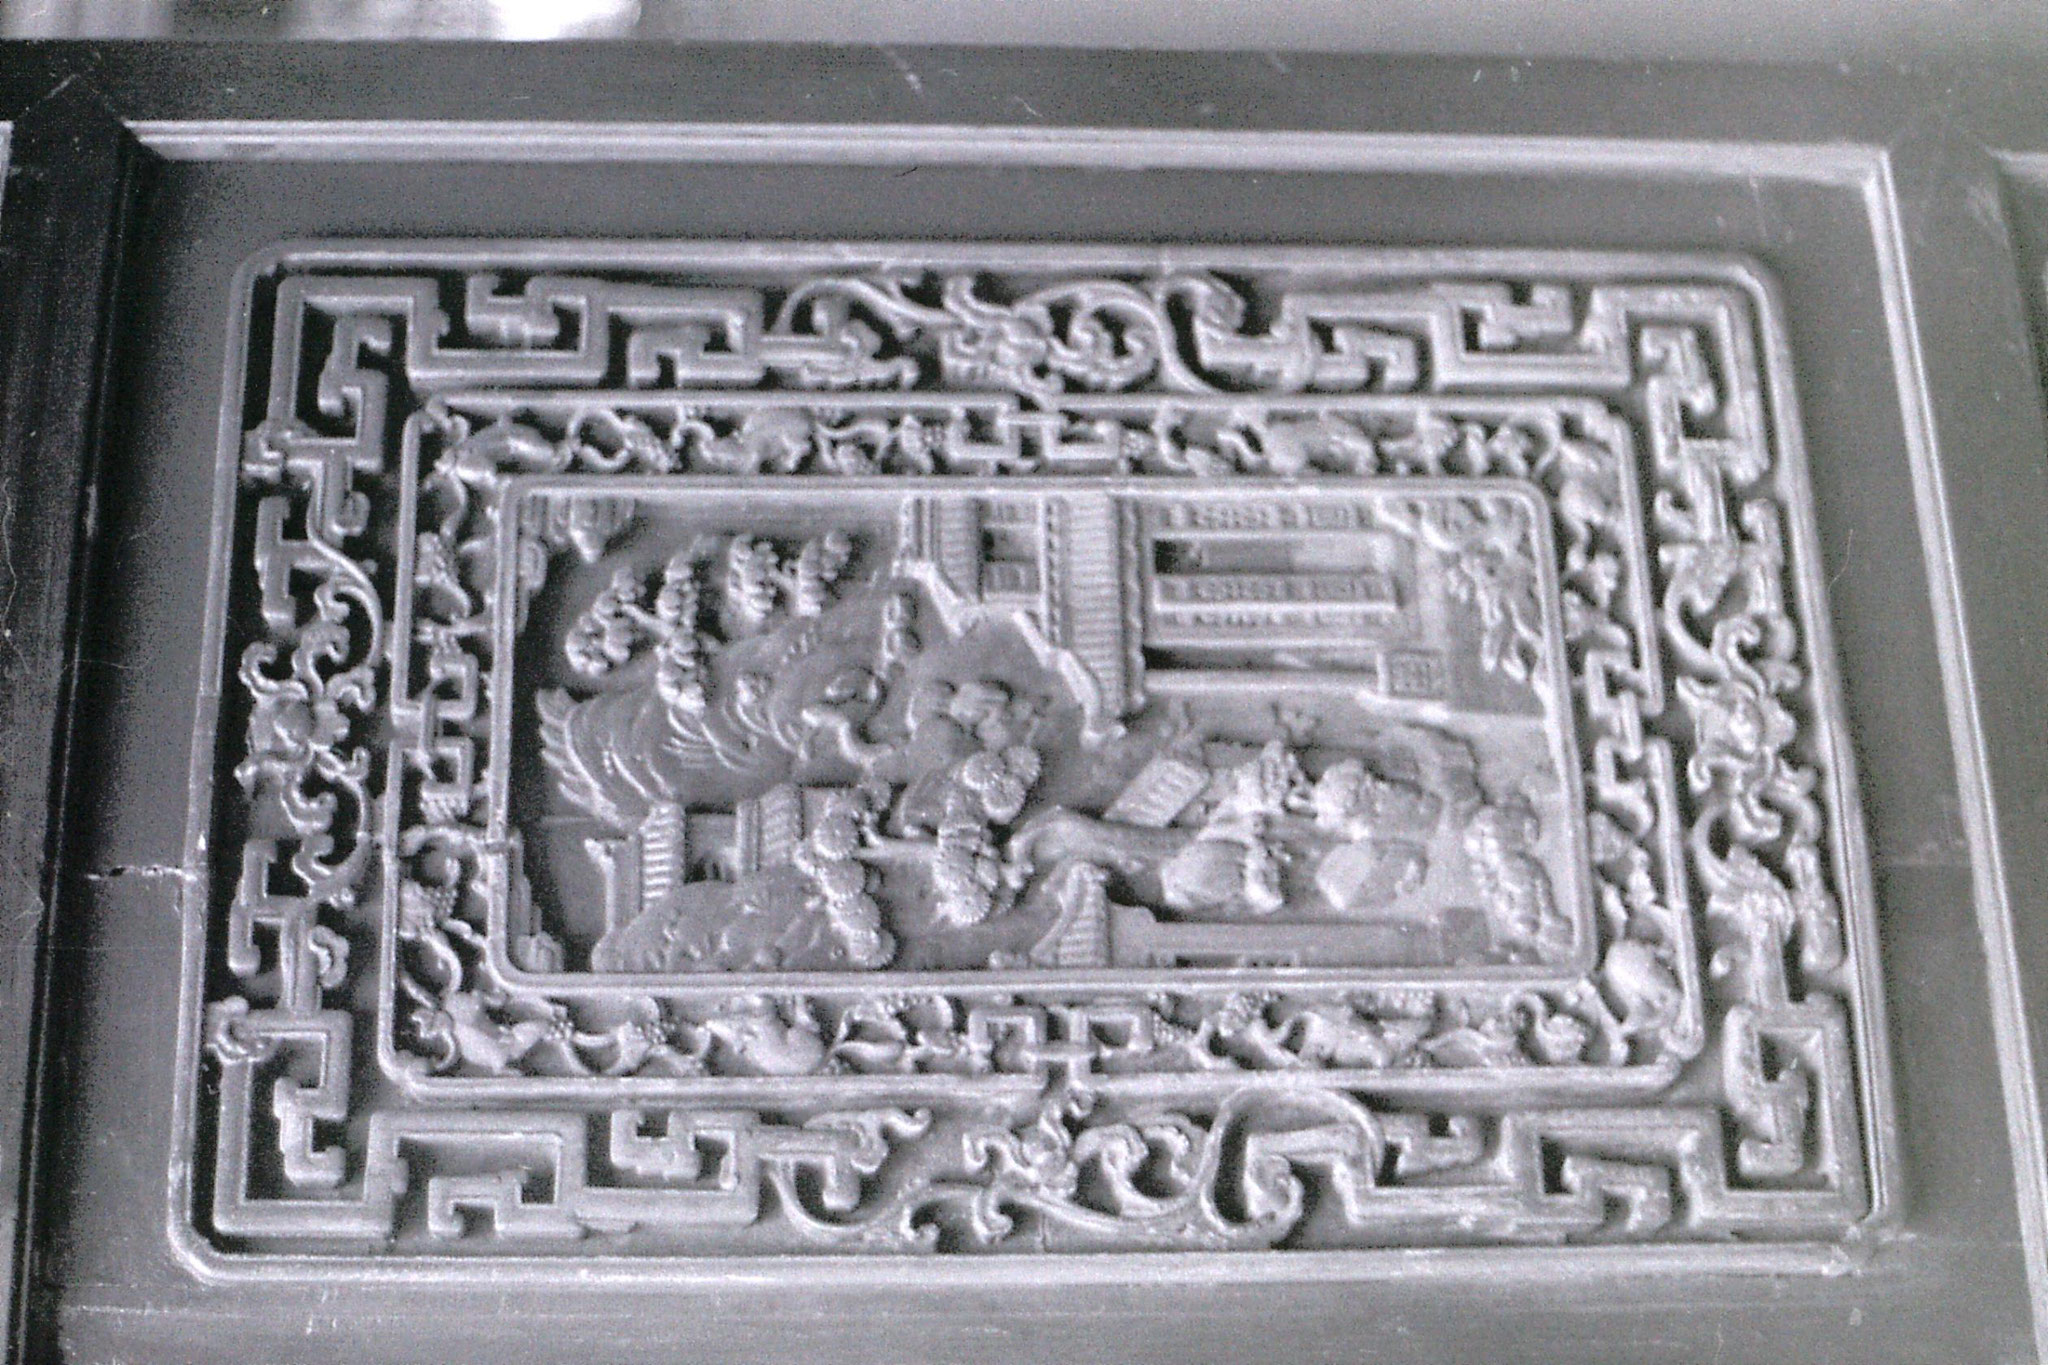 21/3/1989: 16: Suzhou Wangshi Gardens door panel